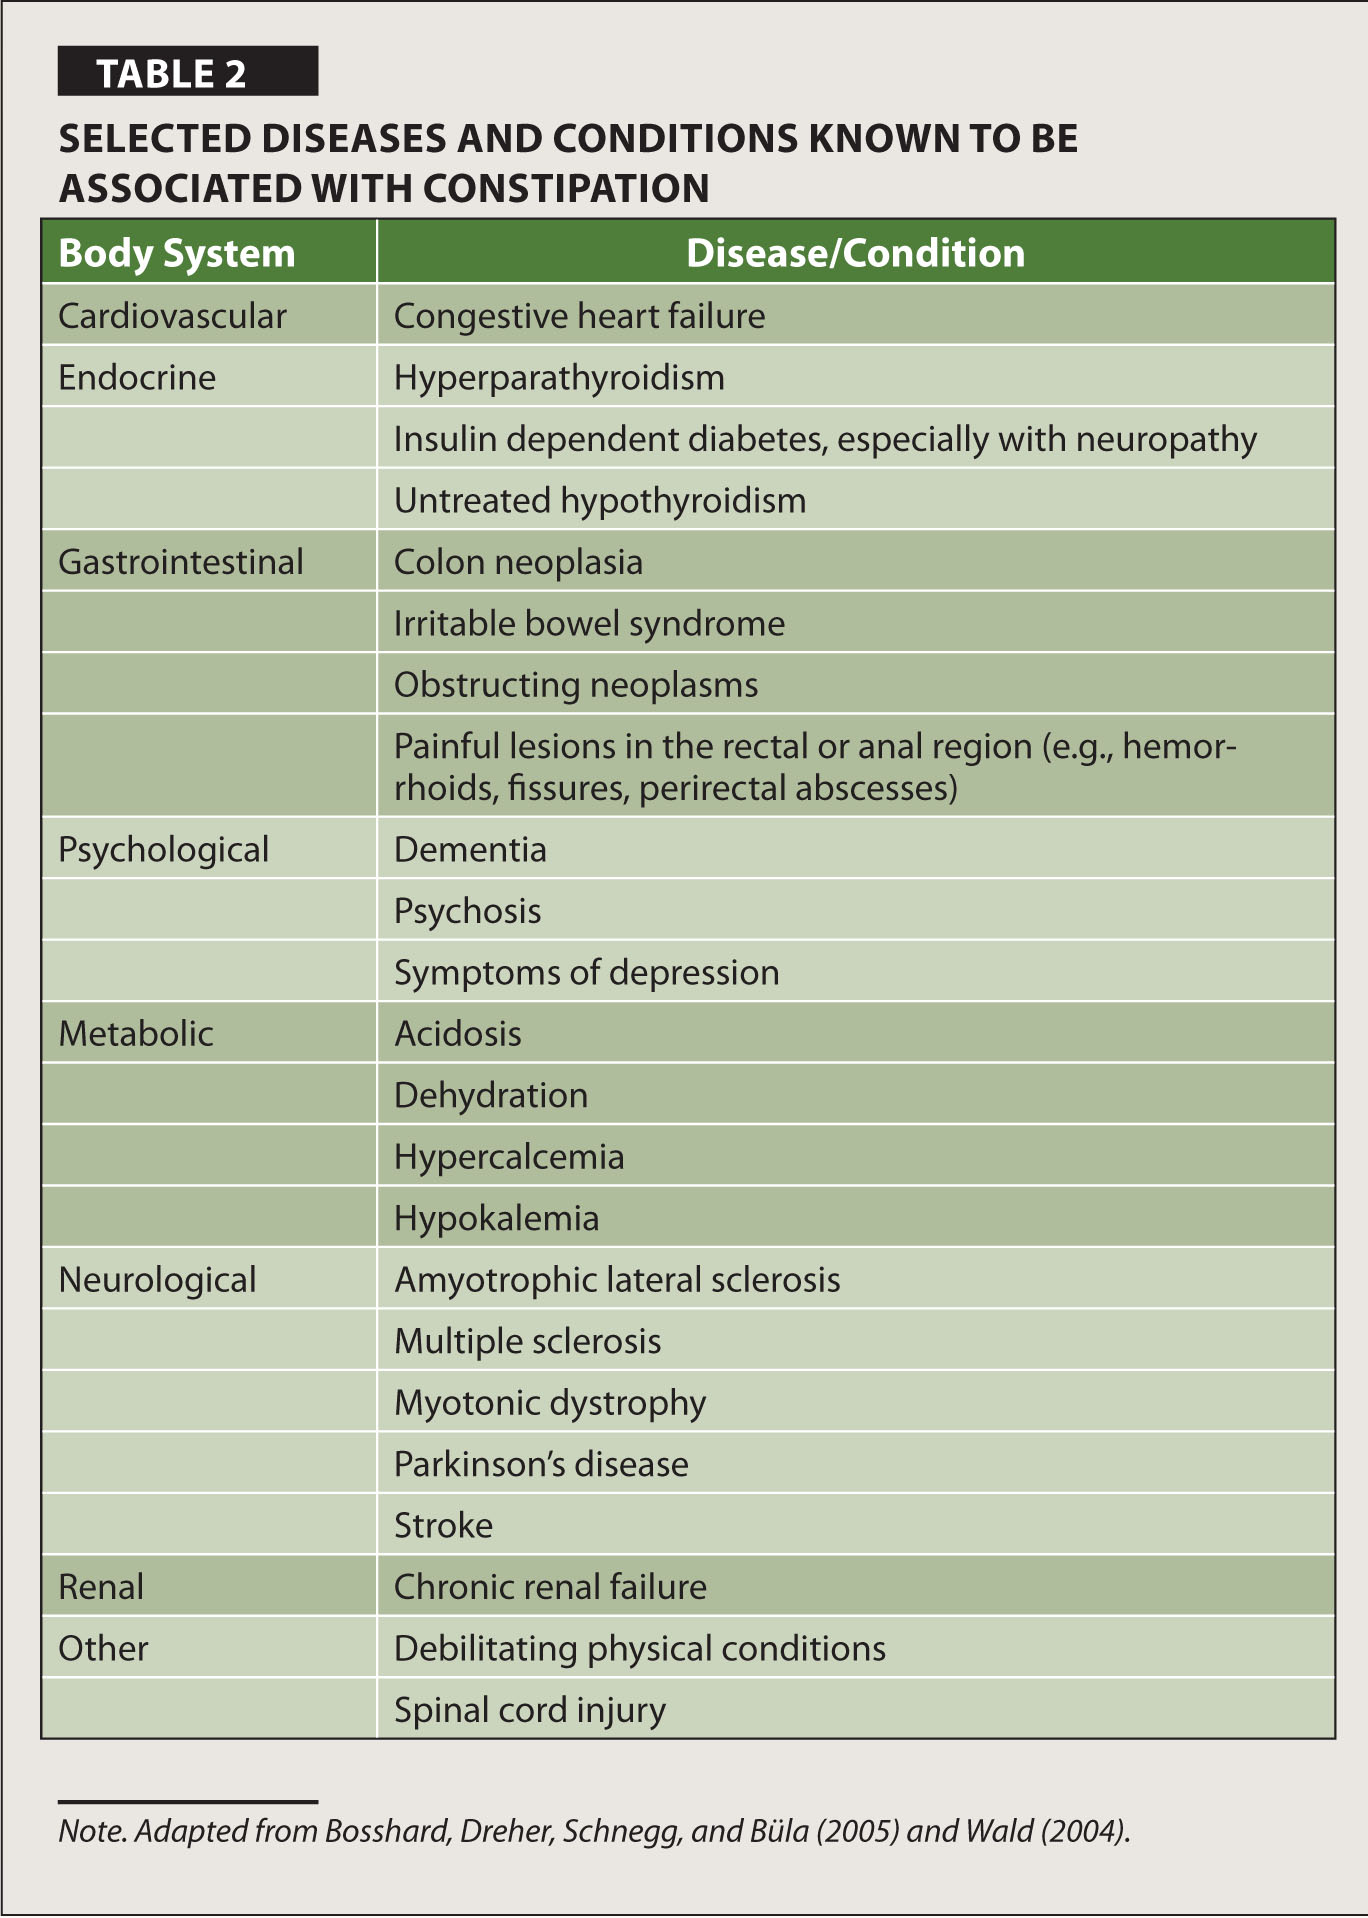 Selected Diseases and Conditions Known to be Associated With Constipation